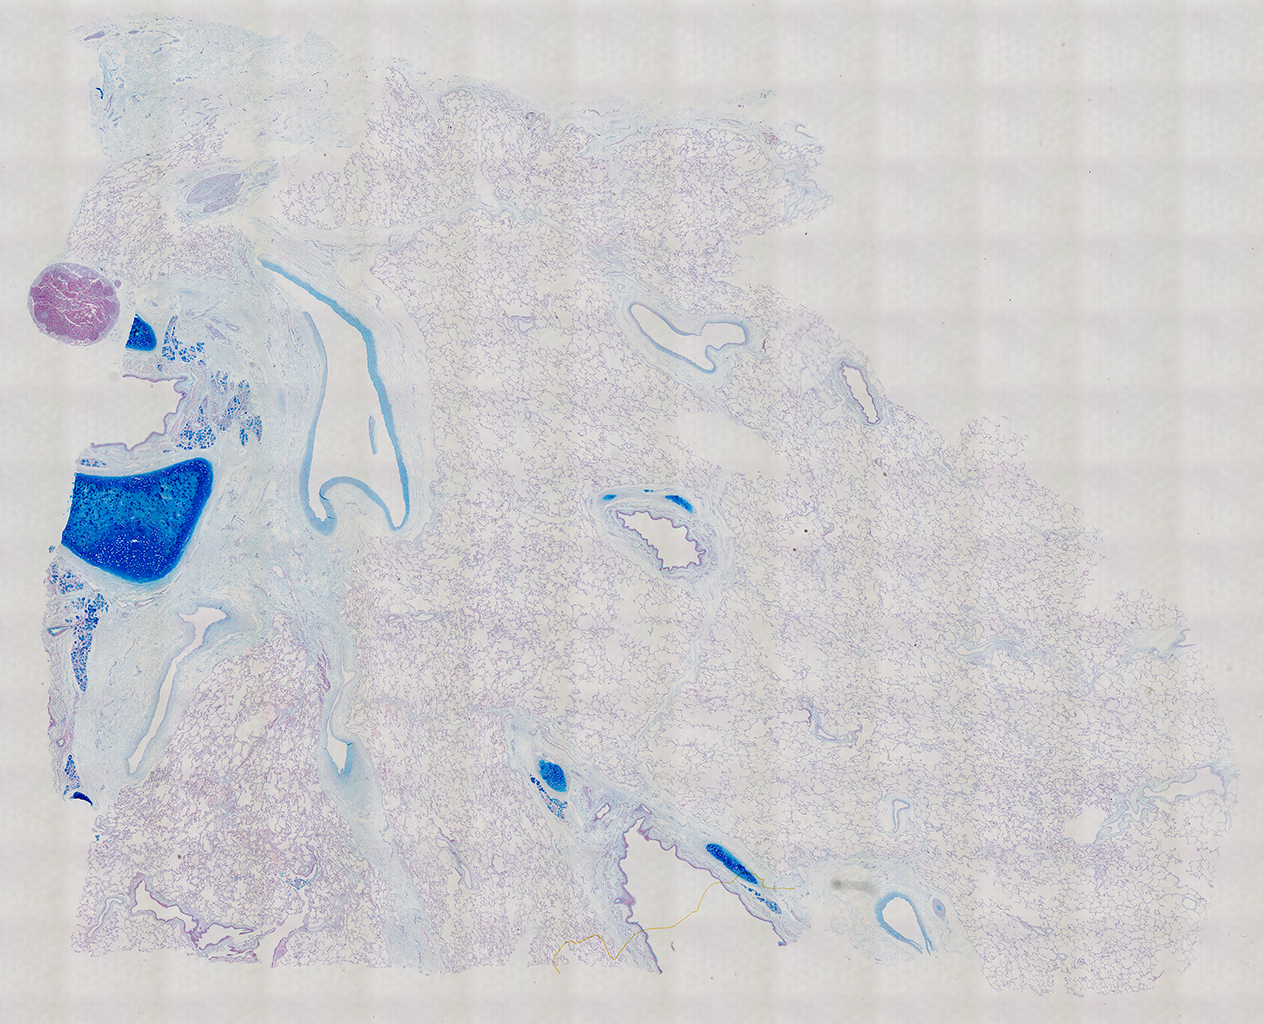 Alcian Blue Staining of 29 Year-Old Human Donor D175-10C1.21